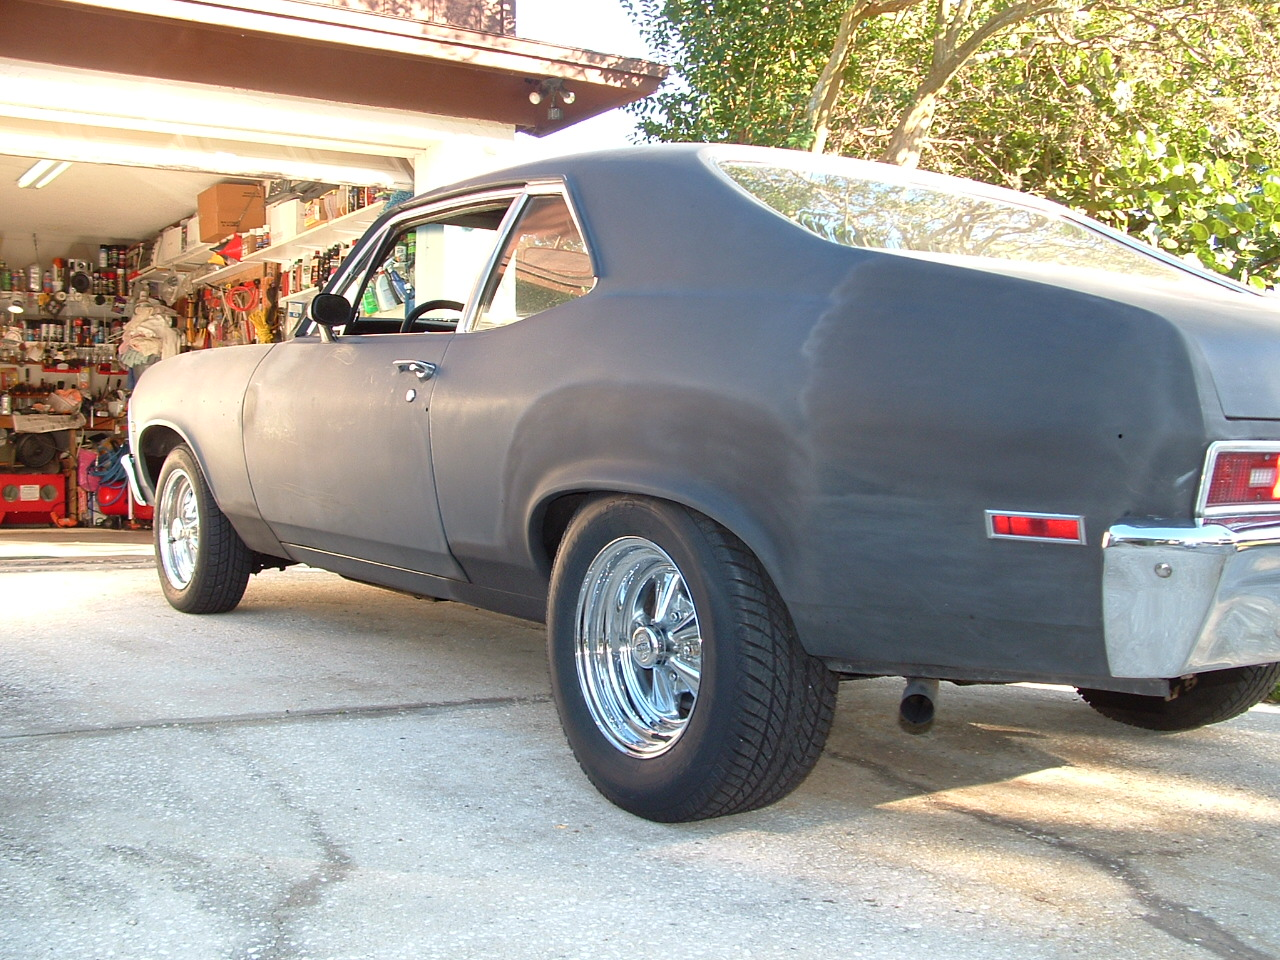 All Chevy chevy 1970 : Chet's Classics: 1970 Chevy Nova in the works